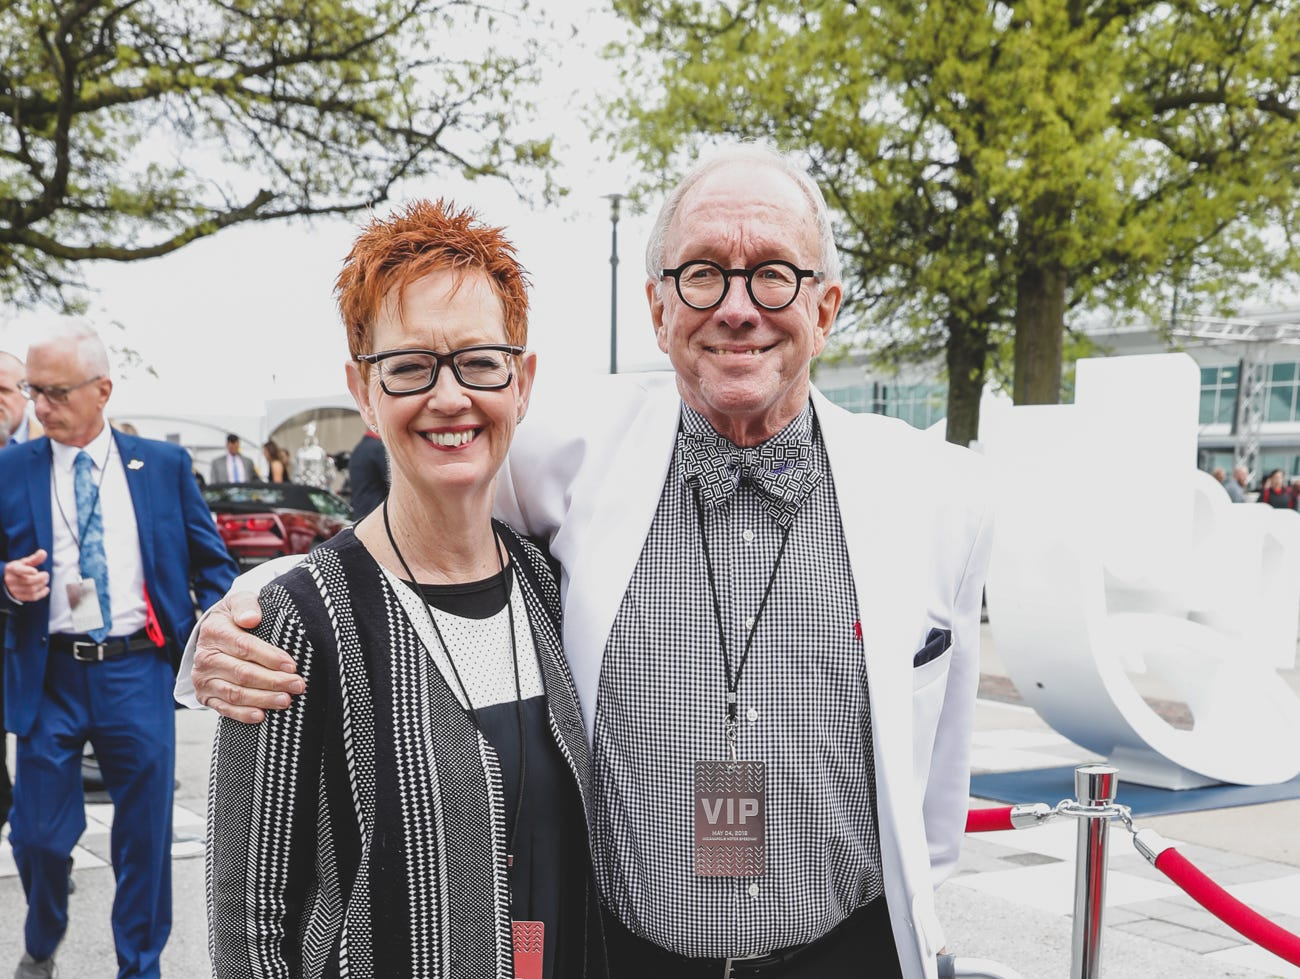 Steve and Barbara Butz walks and roll the red carpet at the Rev Indy fundraiser, held at the Indianapolis Motor Speedway on Saturday, May 4, 2019. Funds raised support the IU Health Foundation statewide and the IU Health Emergency Medical Center at IMS.